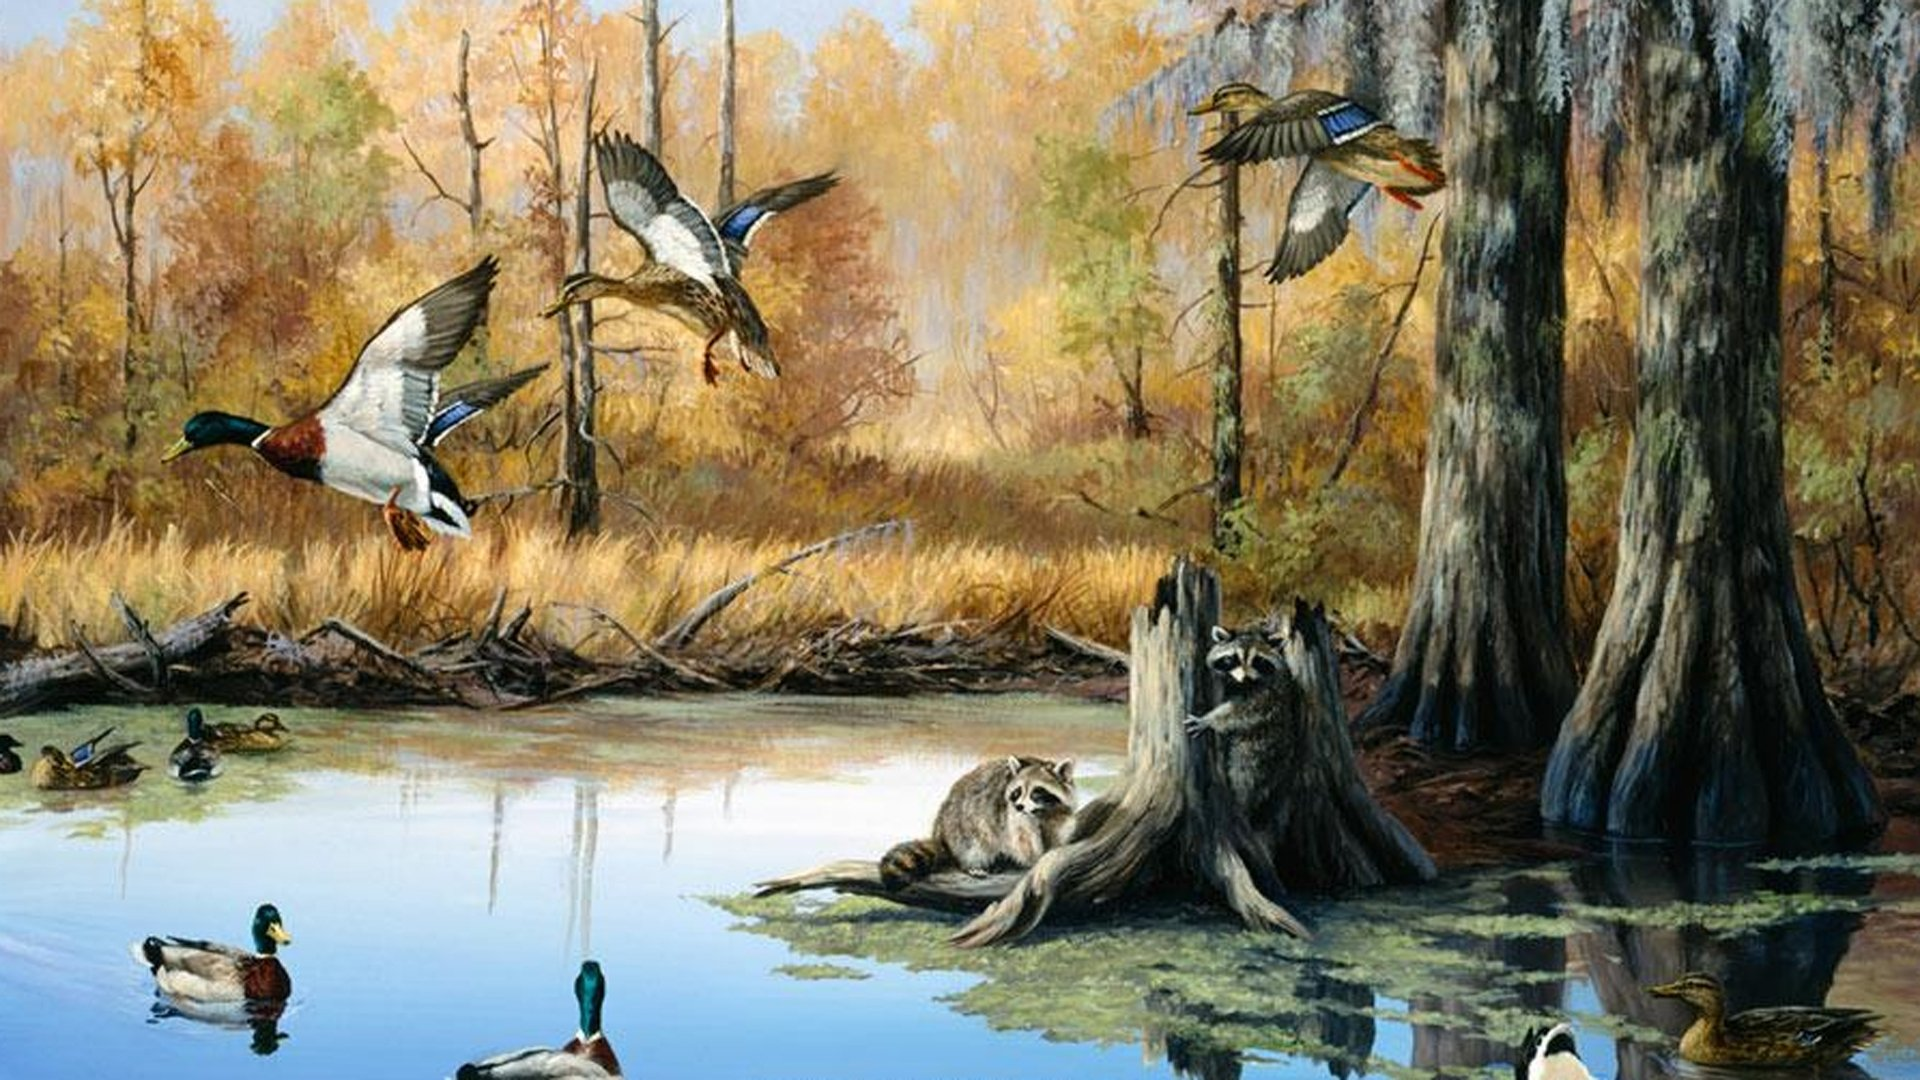 Duck Hunting Laptop Background - HD Wallpaper